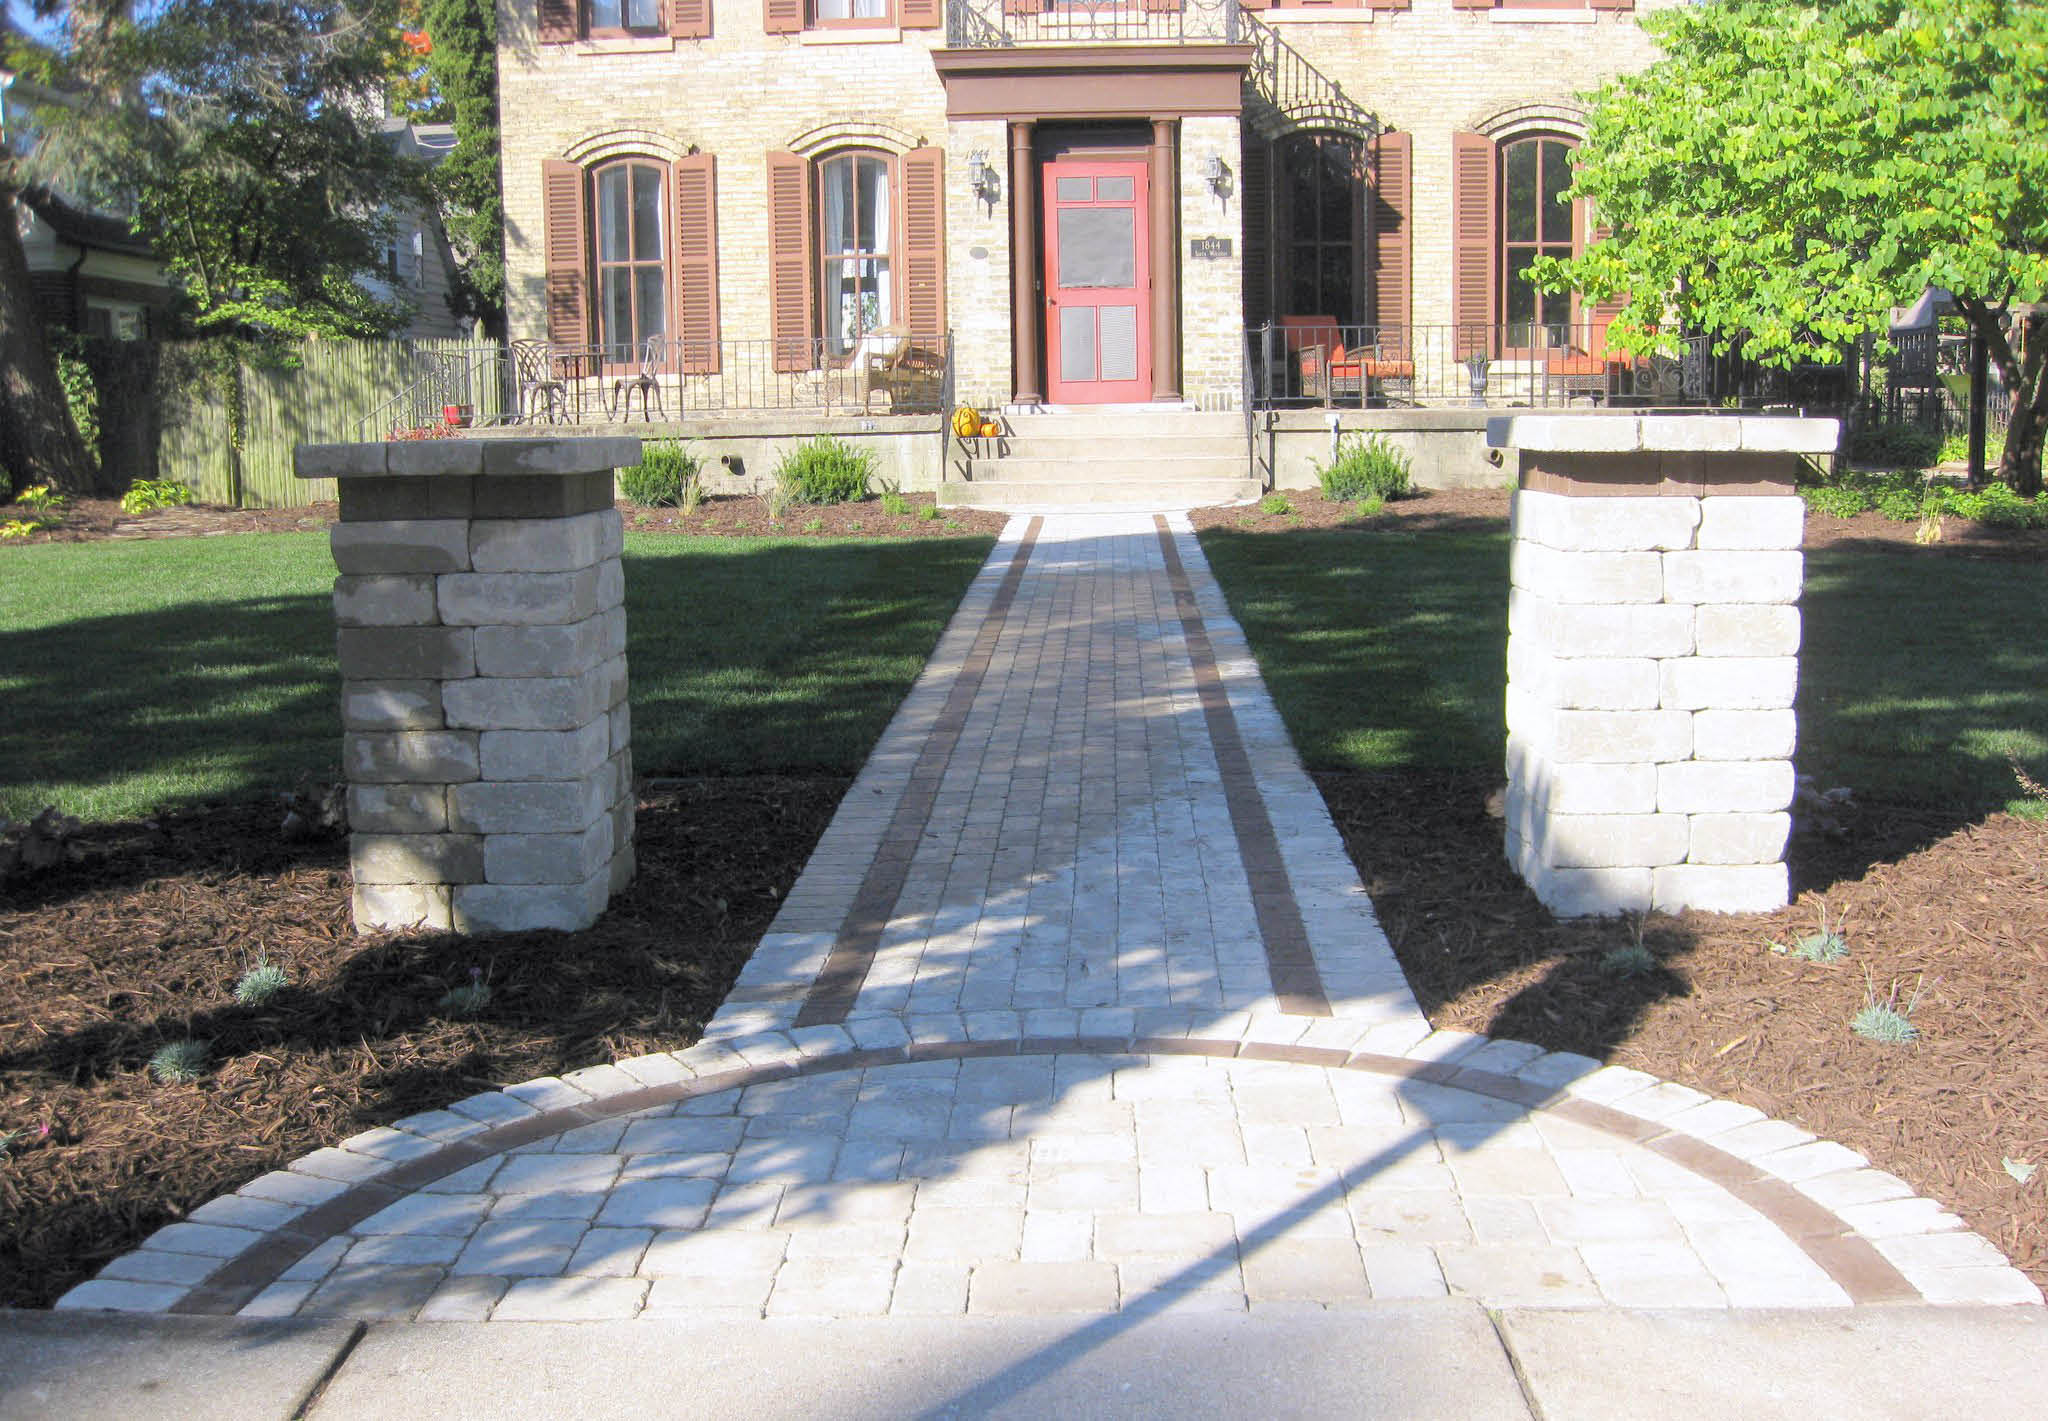 Picture of a landscape design of a patio block walkway designed by Aspen Properties in Racine, WI.